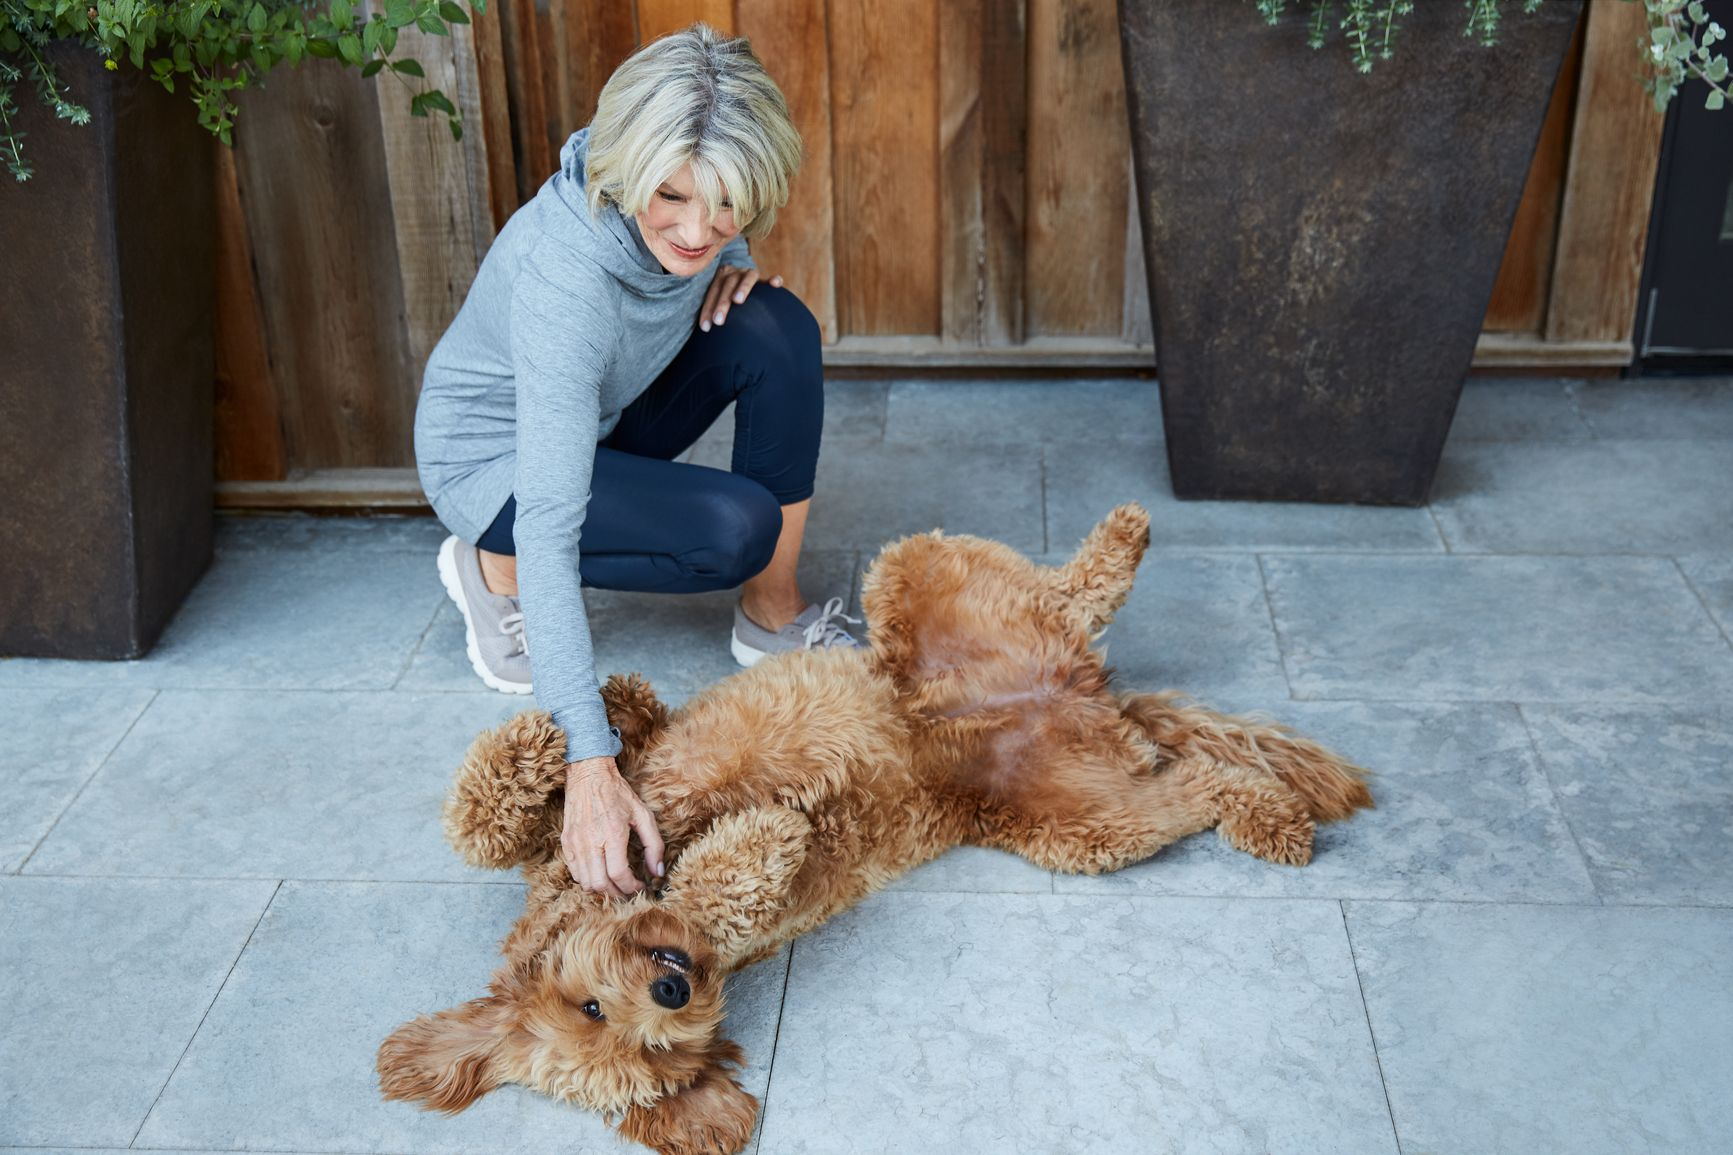 how to stop dog aggression towards owner